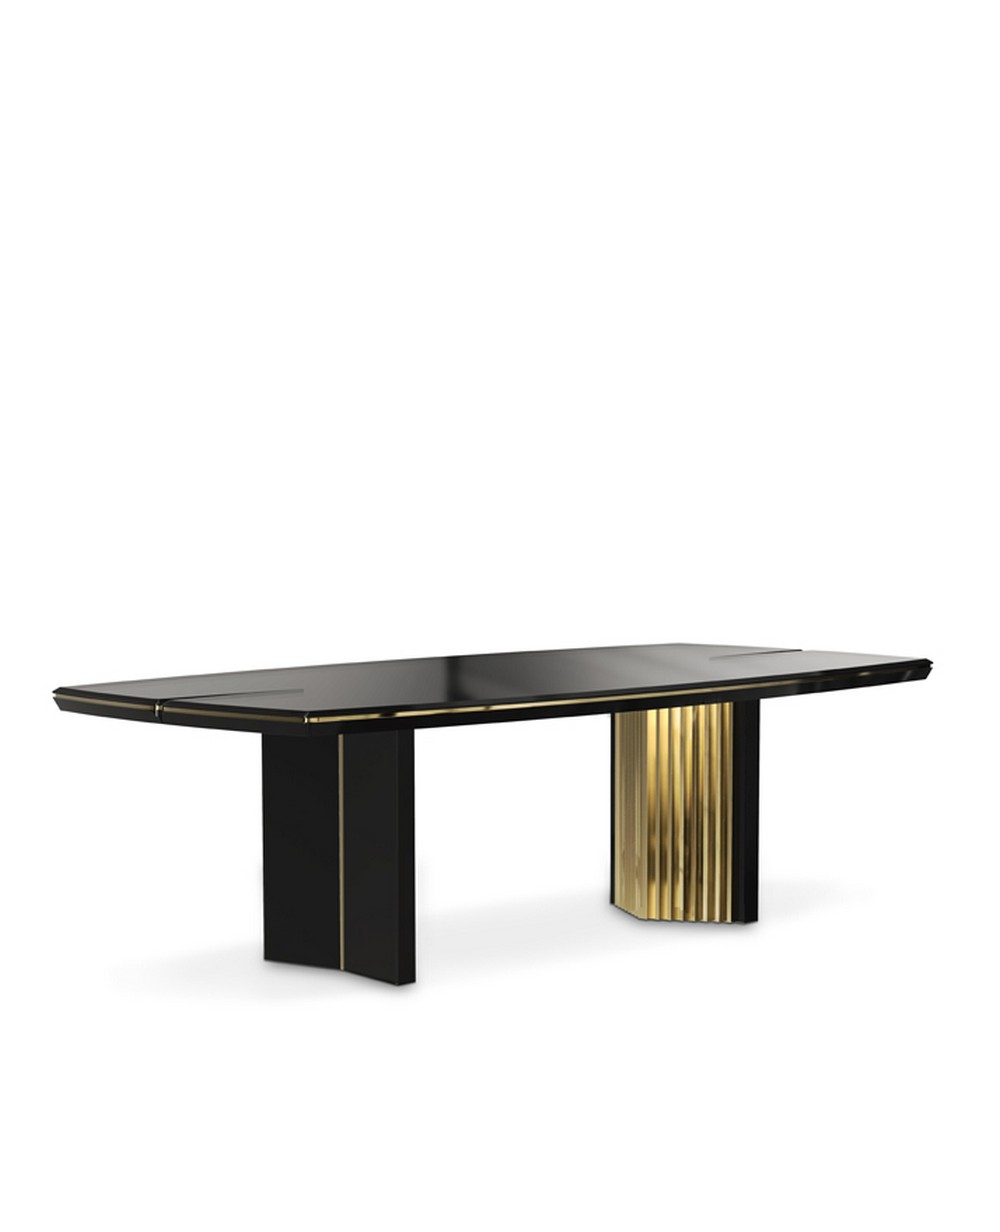 Winter Trends: Modern Dining Tables For Modern Dining Rooms modern dining tables Winter Trends: Modern Dining Tables For Modern Dining Rooms beyond